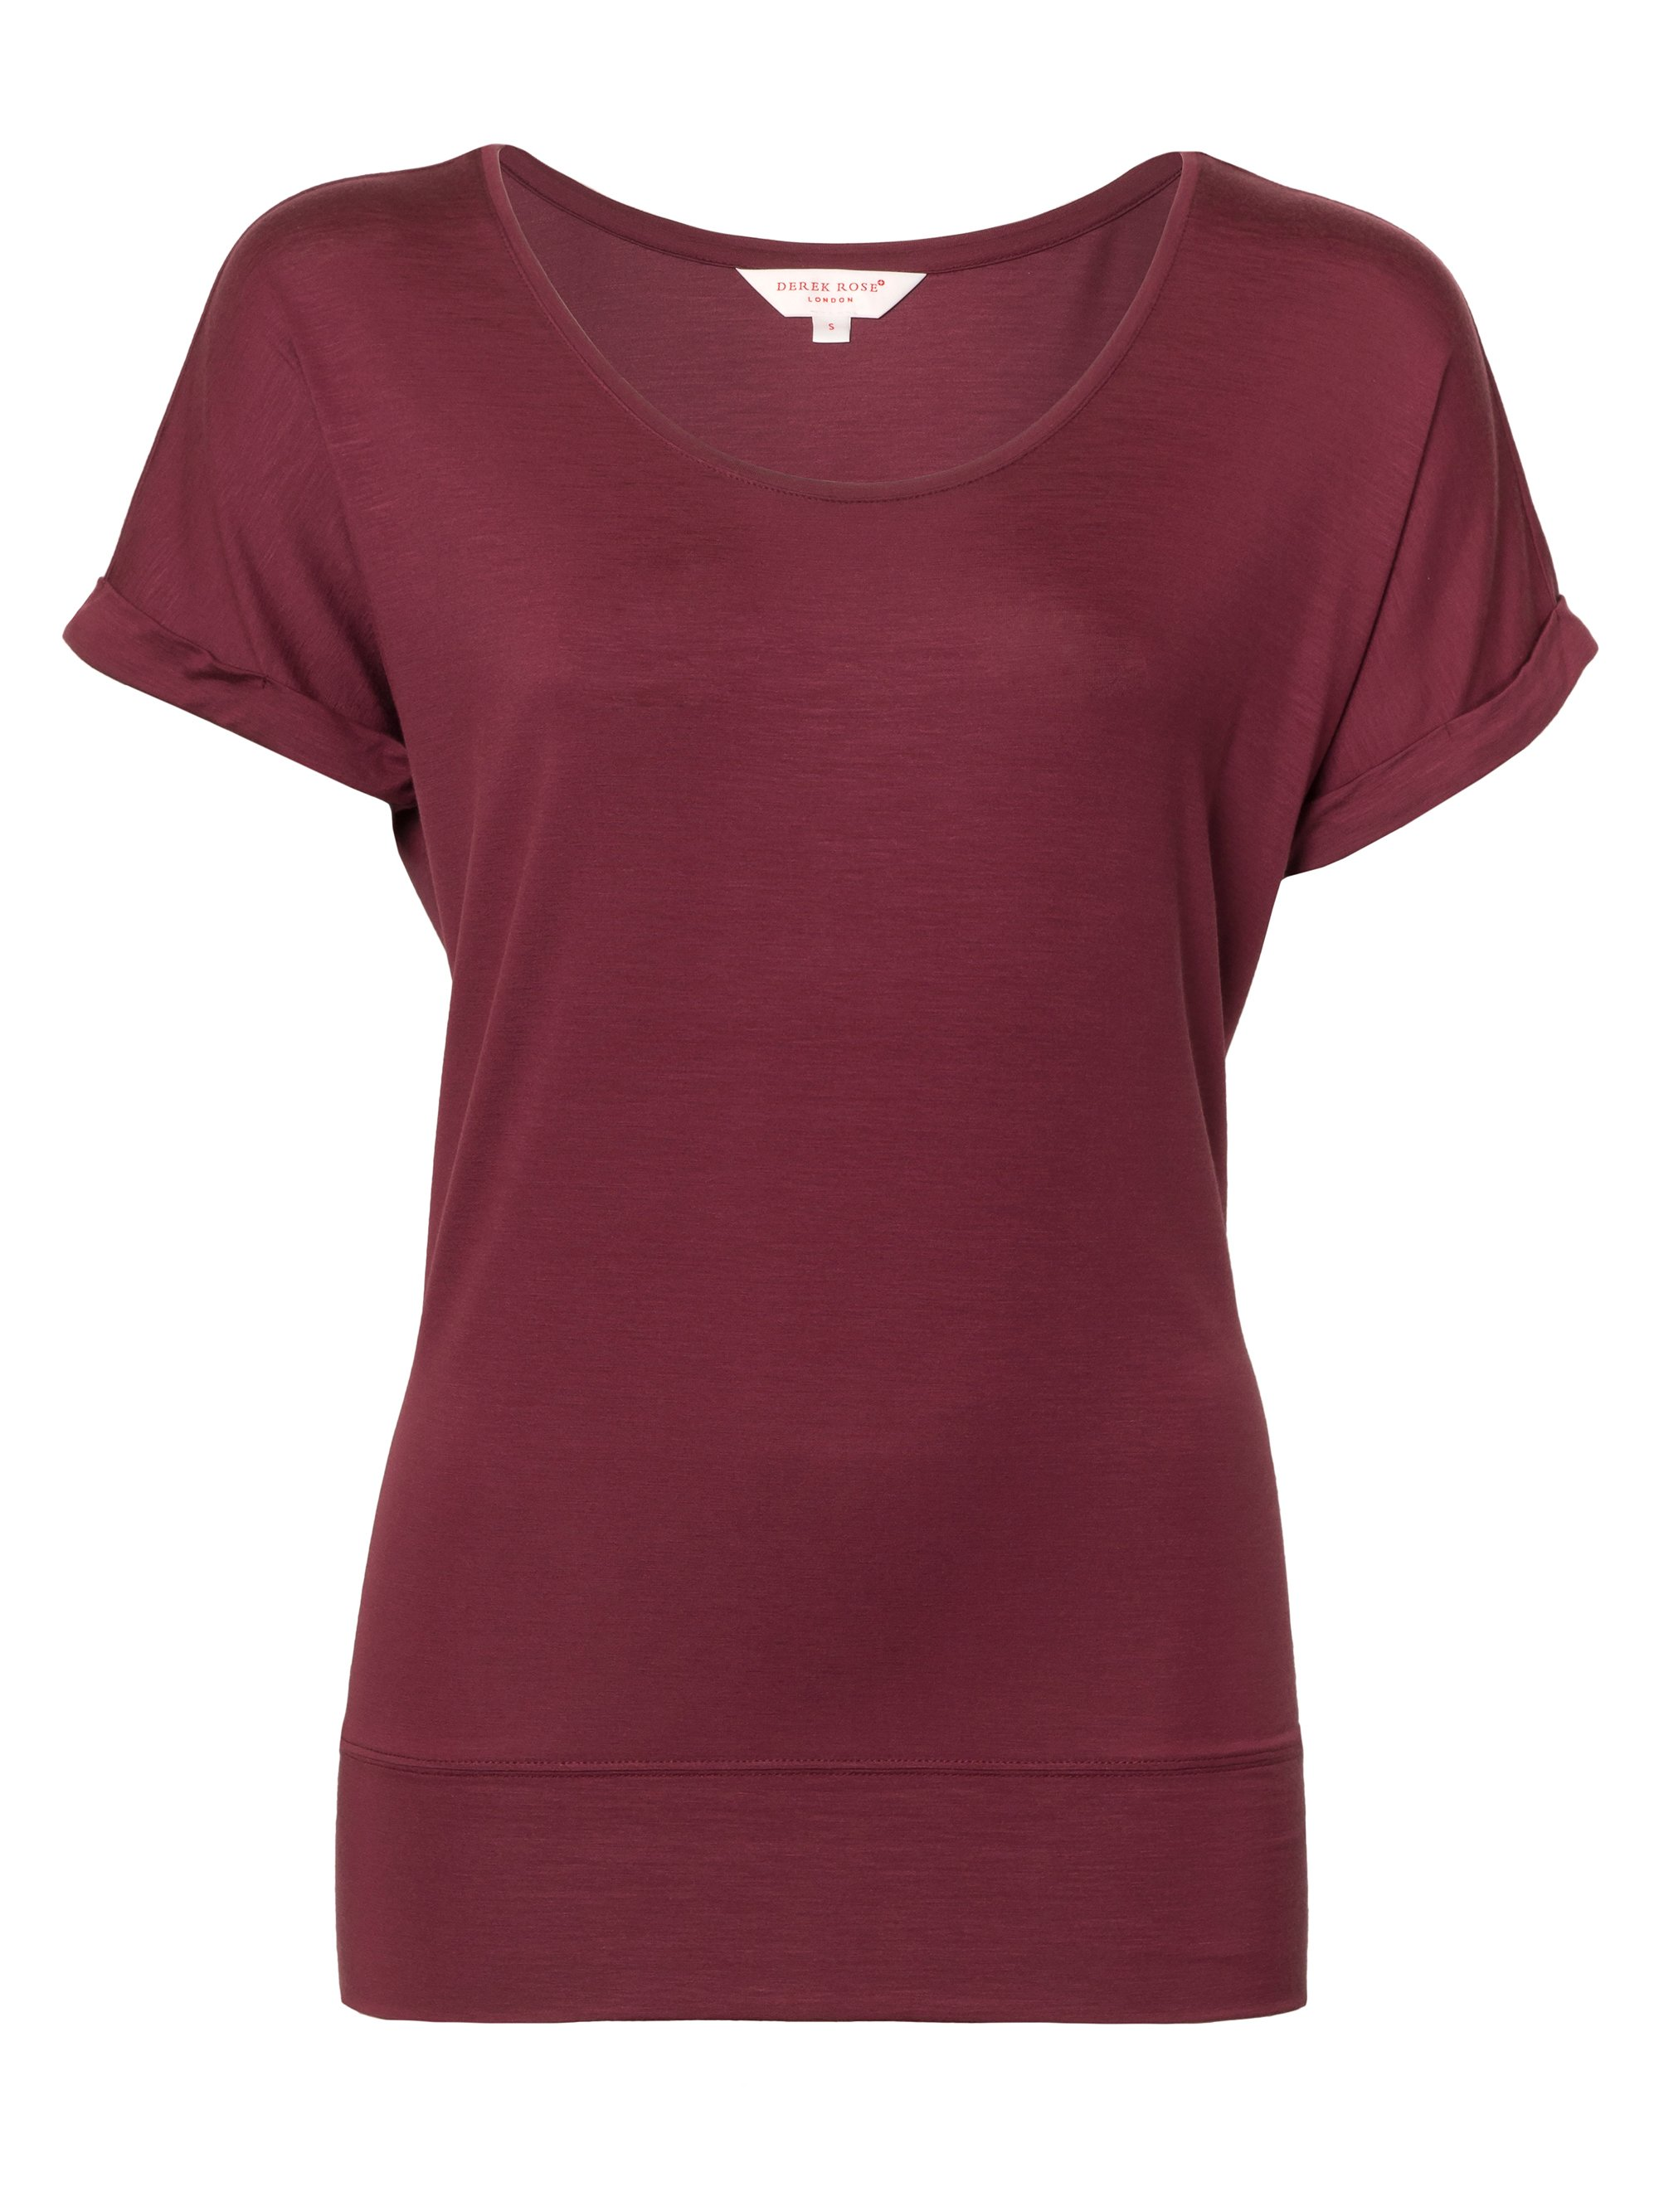 Women's Short Sleeve Lounge T-Shirt Carla Micro Modal Stretch Wine